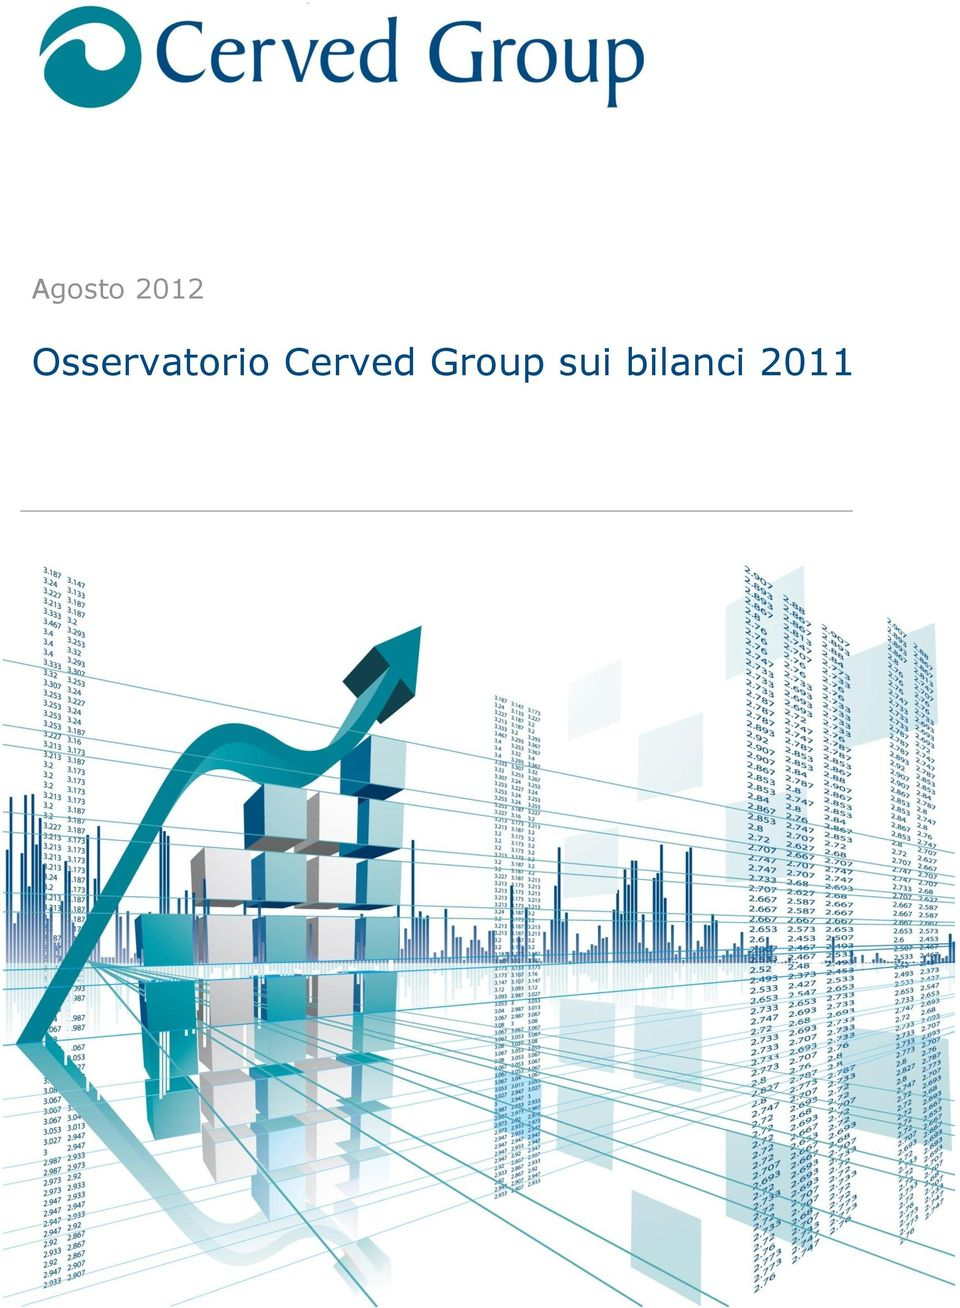 Cerved Group